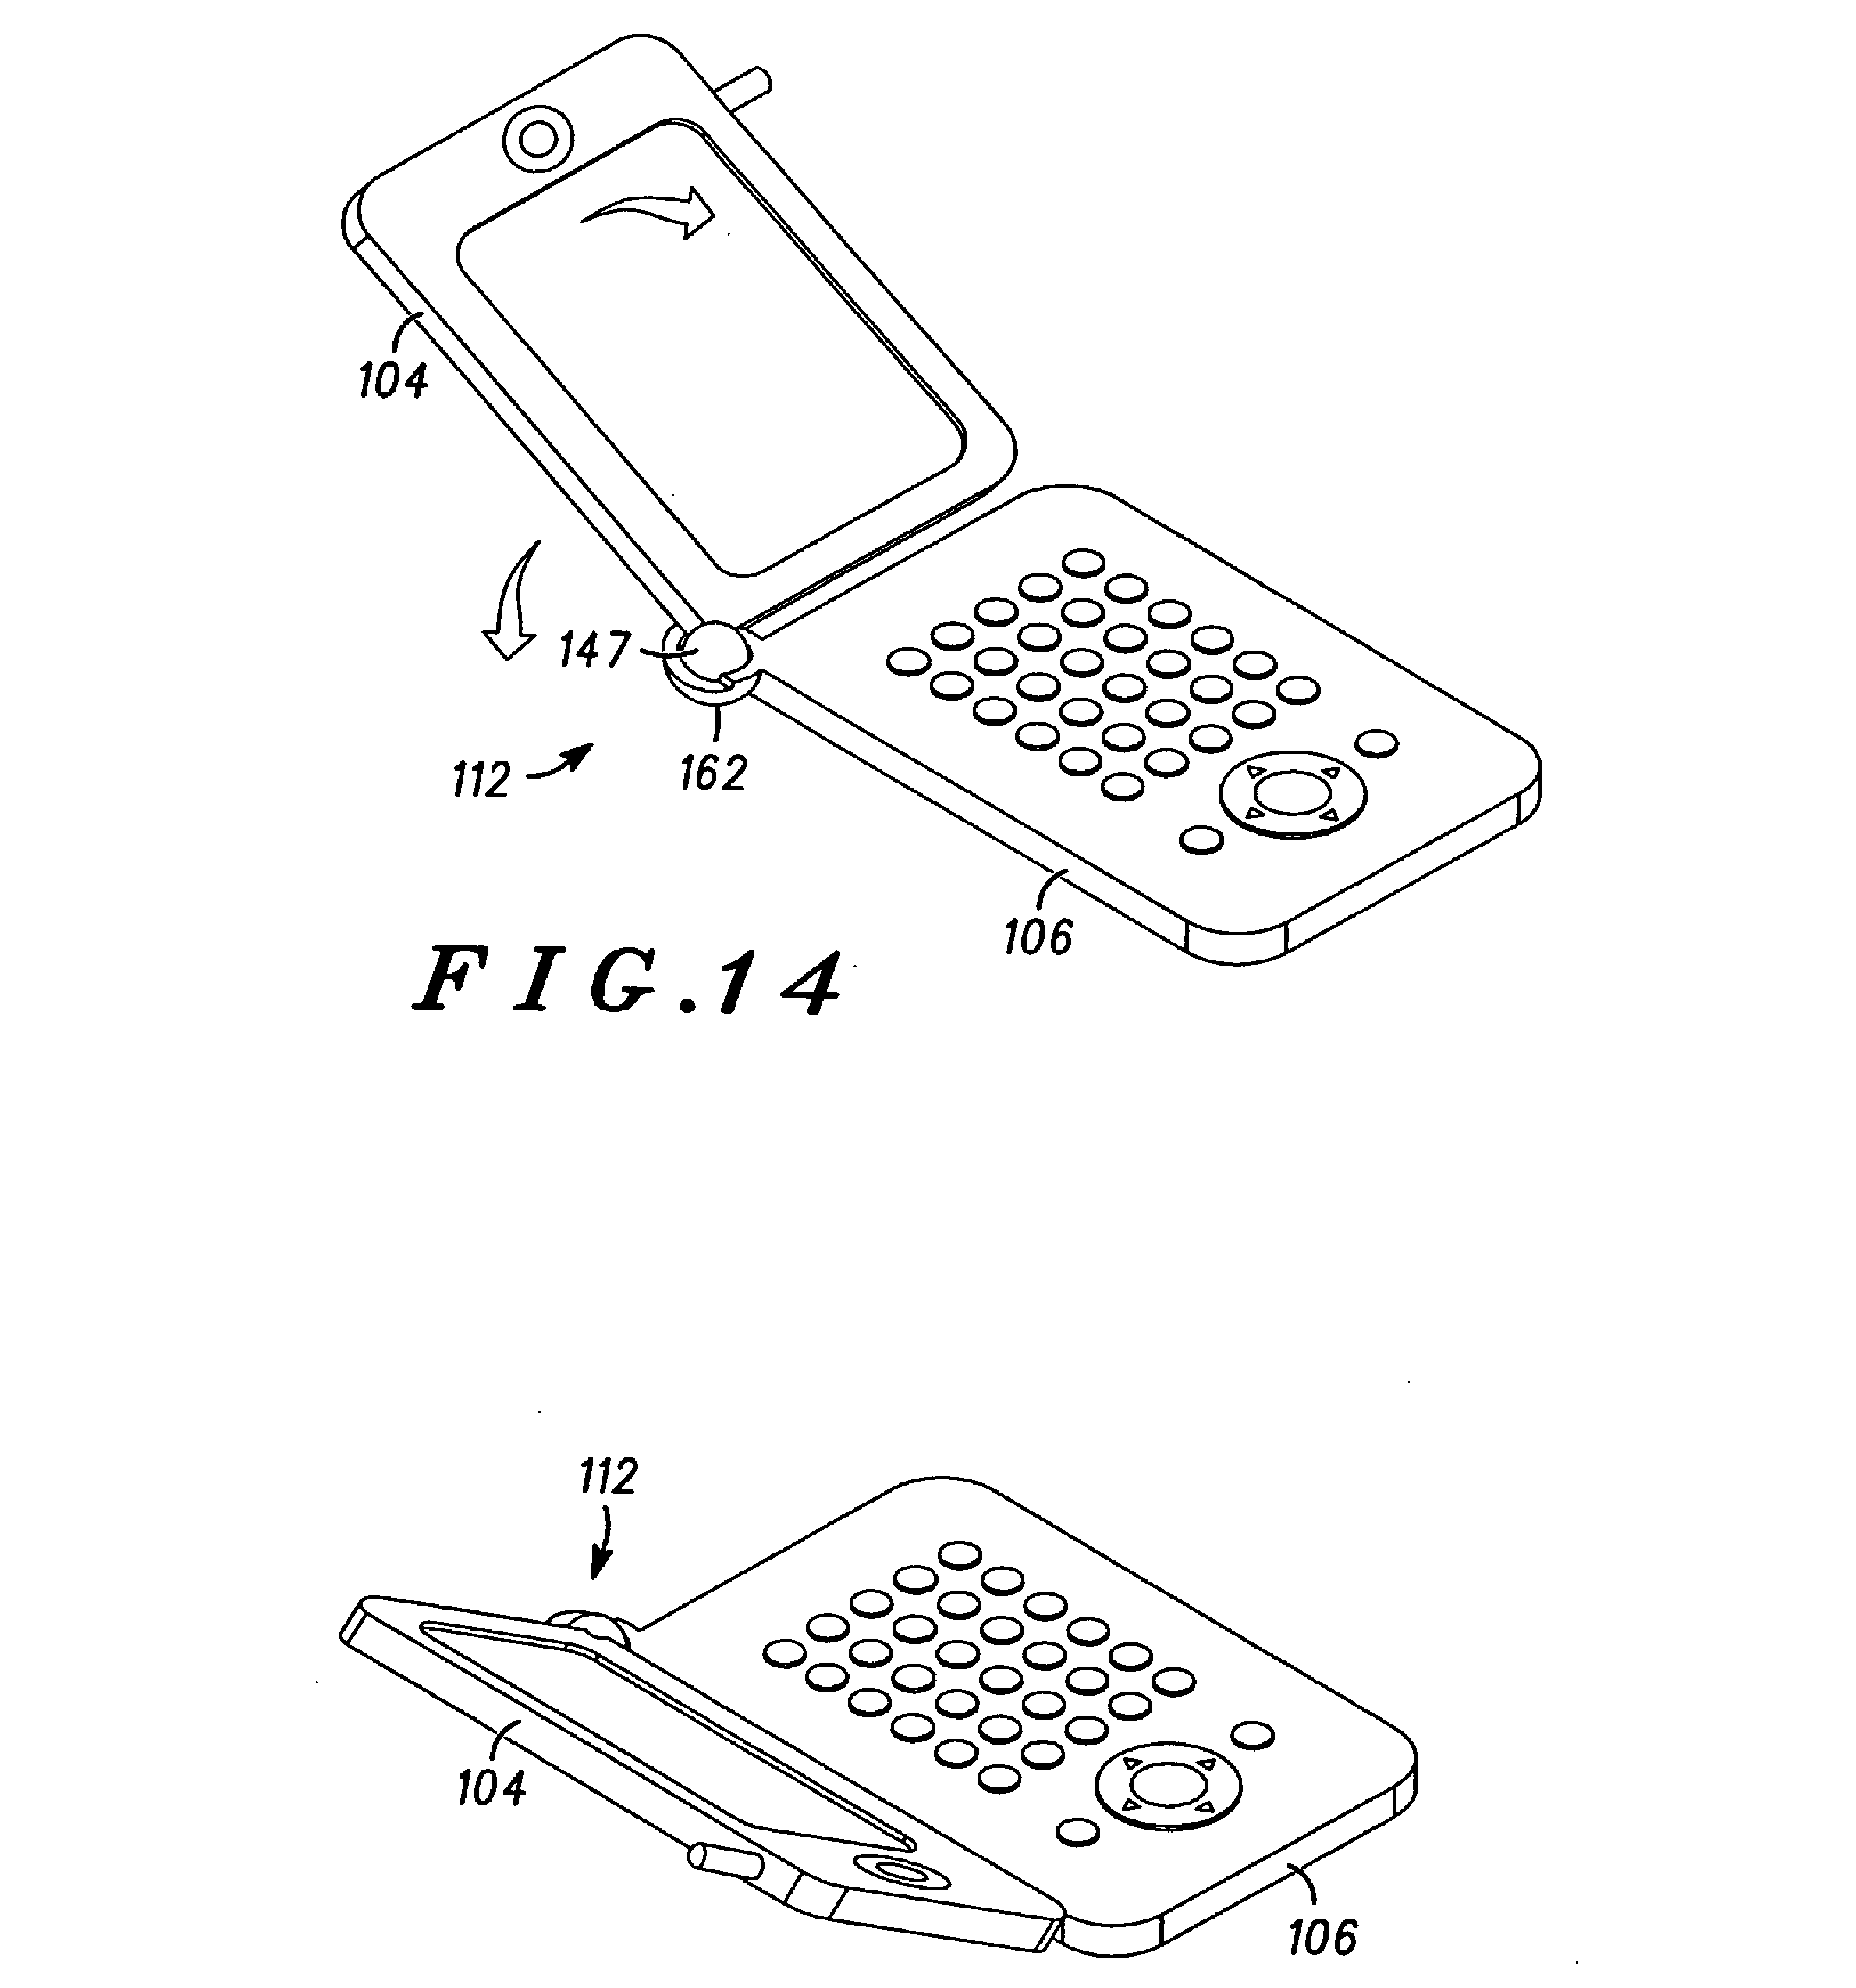 Cpc Definition H04m Telephonic Communication Counting Mechanisms Telephone Hybrid Phone Echo Cancellation Circuit Electrical The Method Comprises Steps Of Detecting A Relative Position First Electronic Element To Second And Selecting An